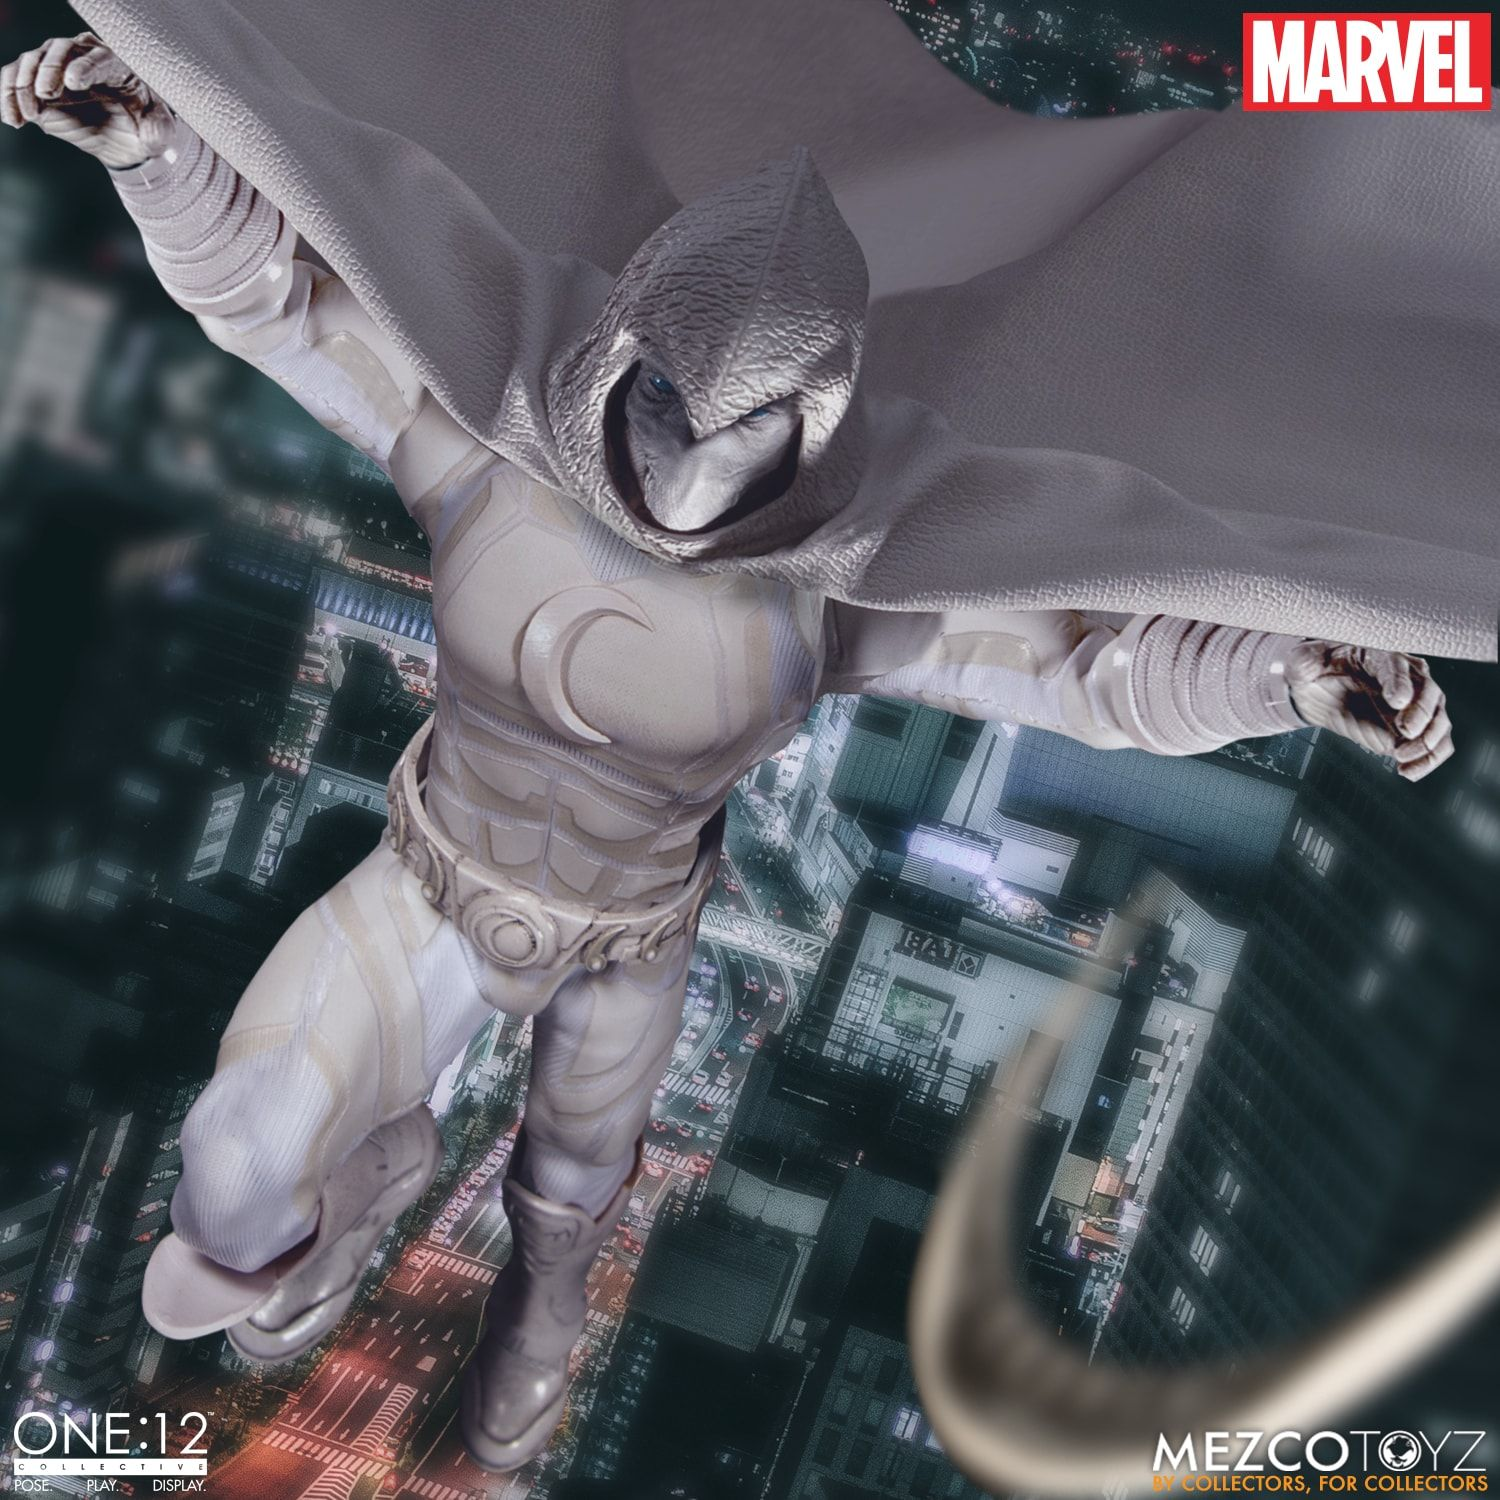 Pre-Order Mezco 1:12 Marvel Moon Knight Figure